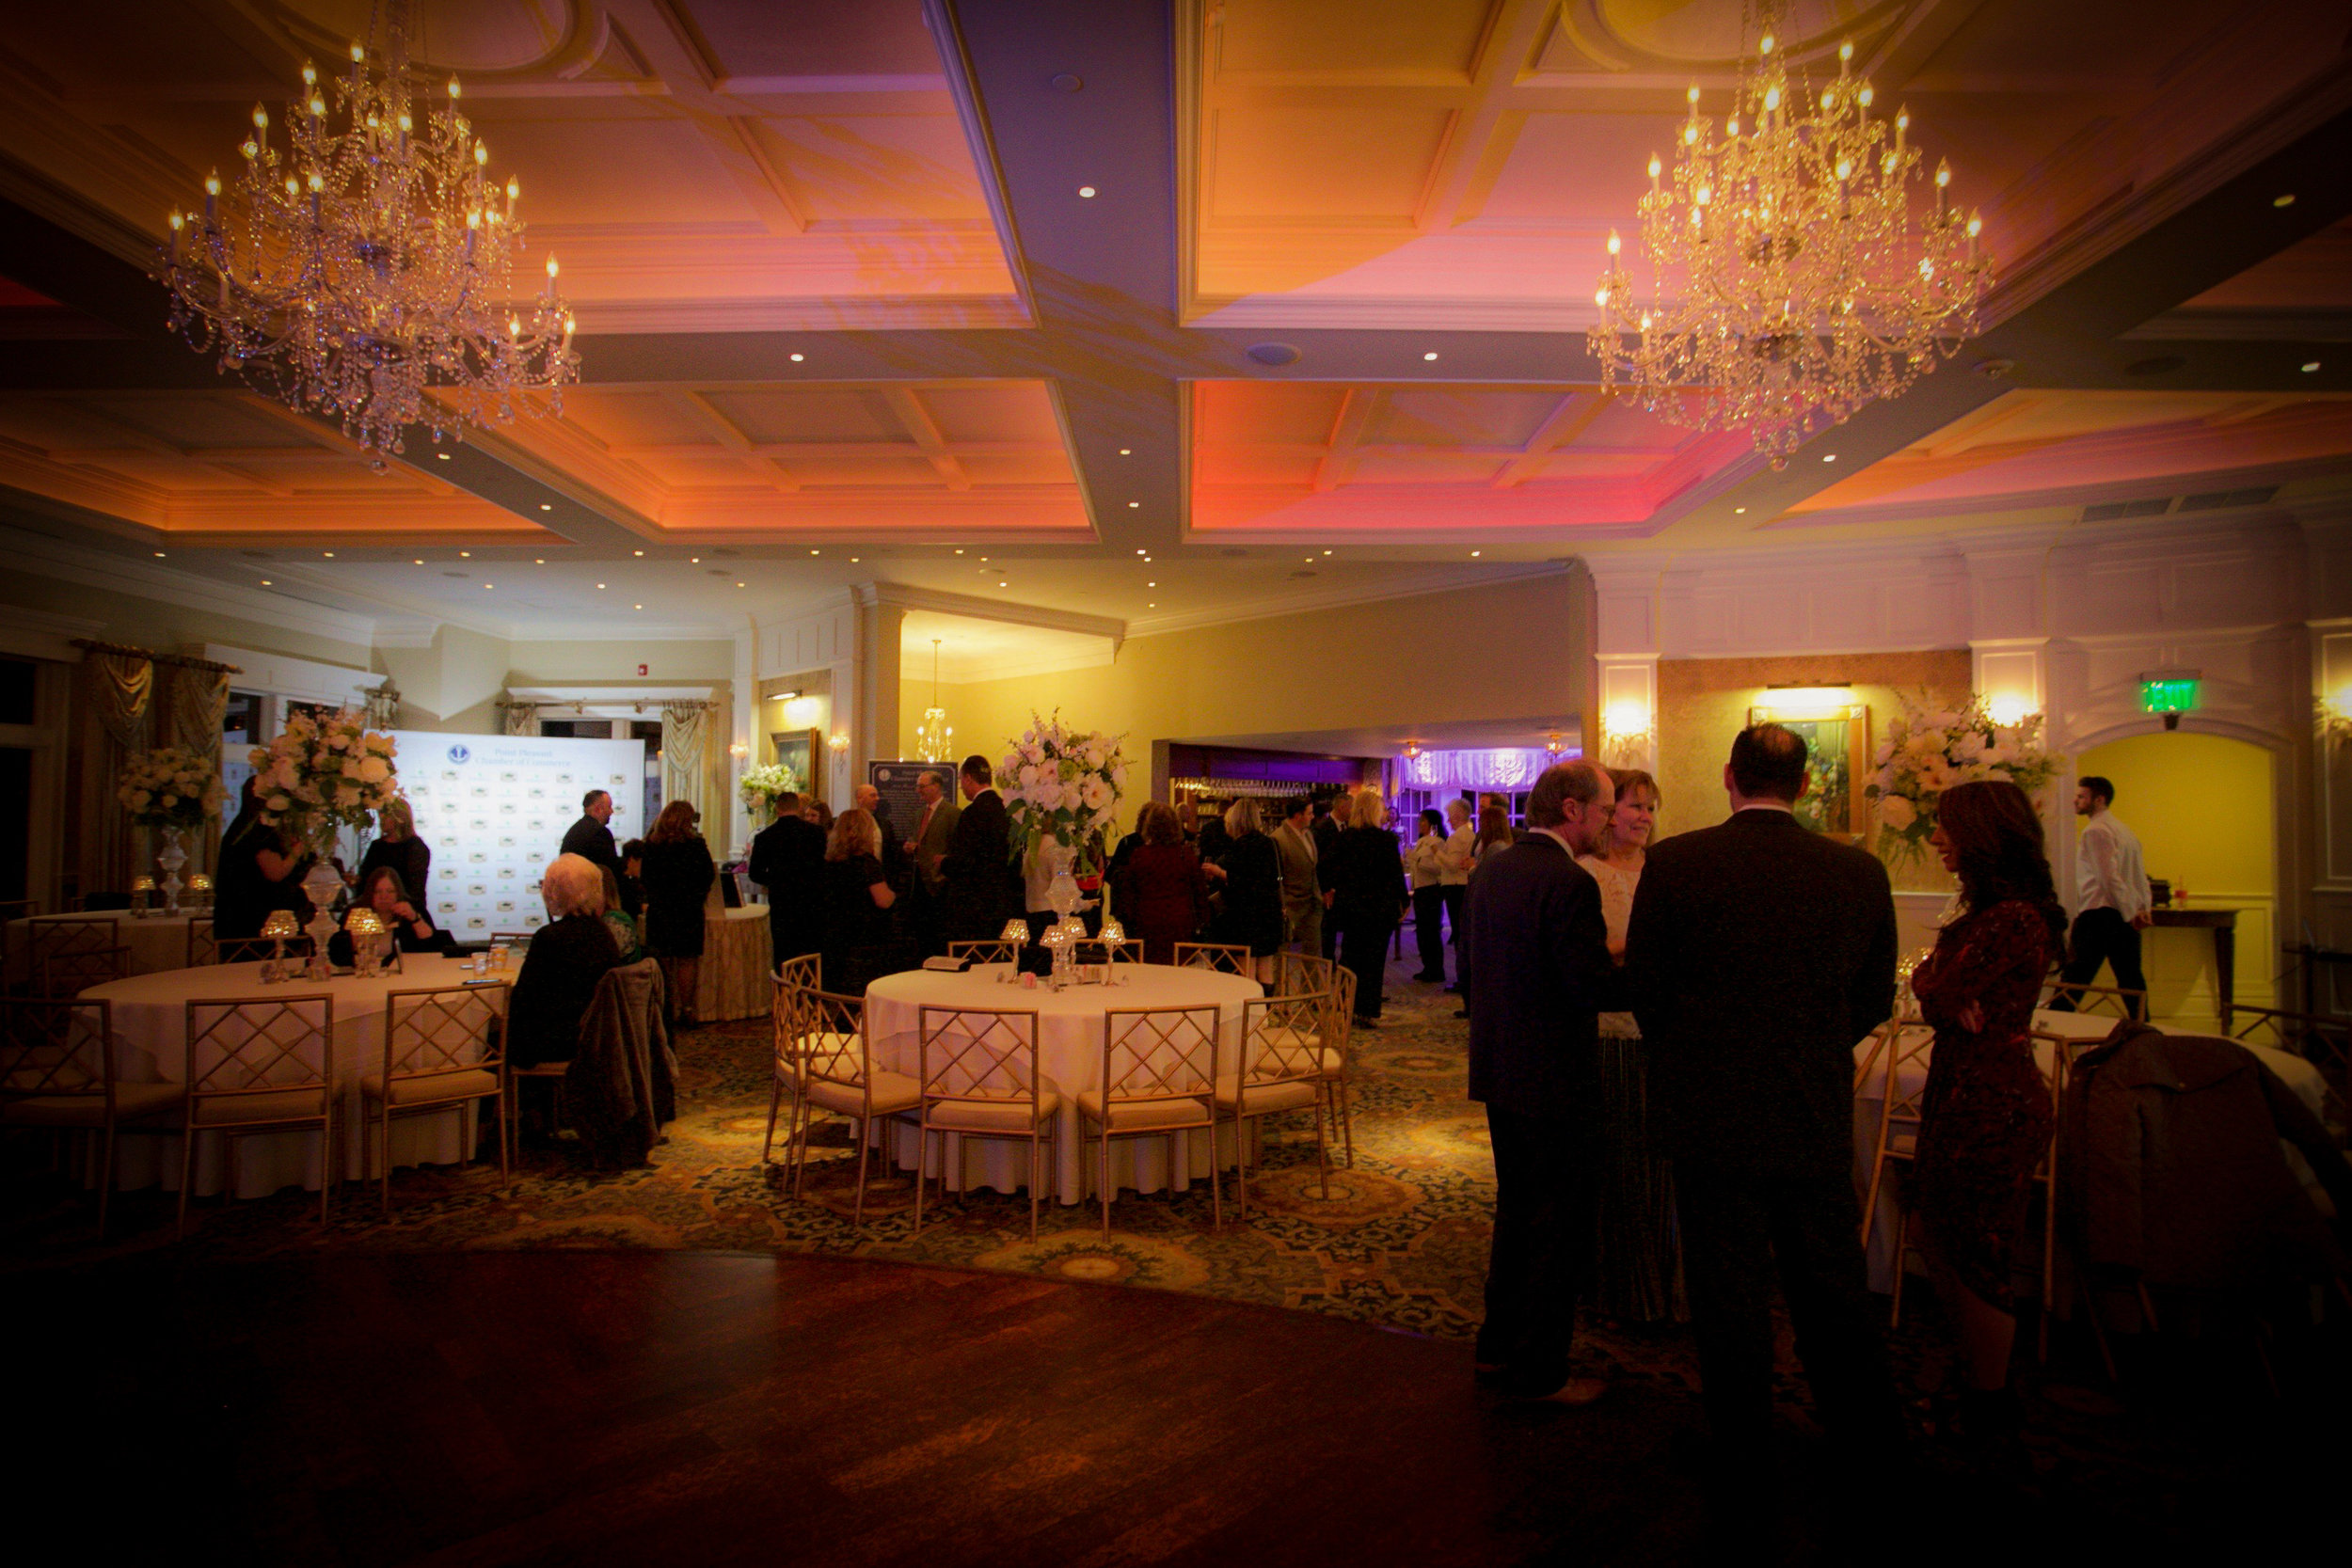 Point Pleasant Chamber of Commerce Annual President's Gala commenced on February 1, 2019 at Clark's Landing Yacht Club Point Pleasant NJ Photography courtesy The Aisle Photography